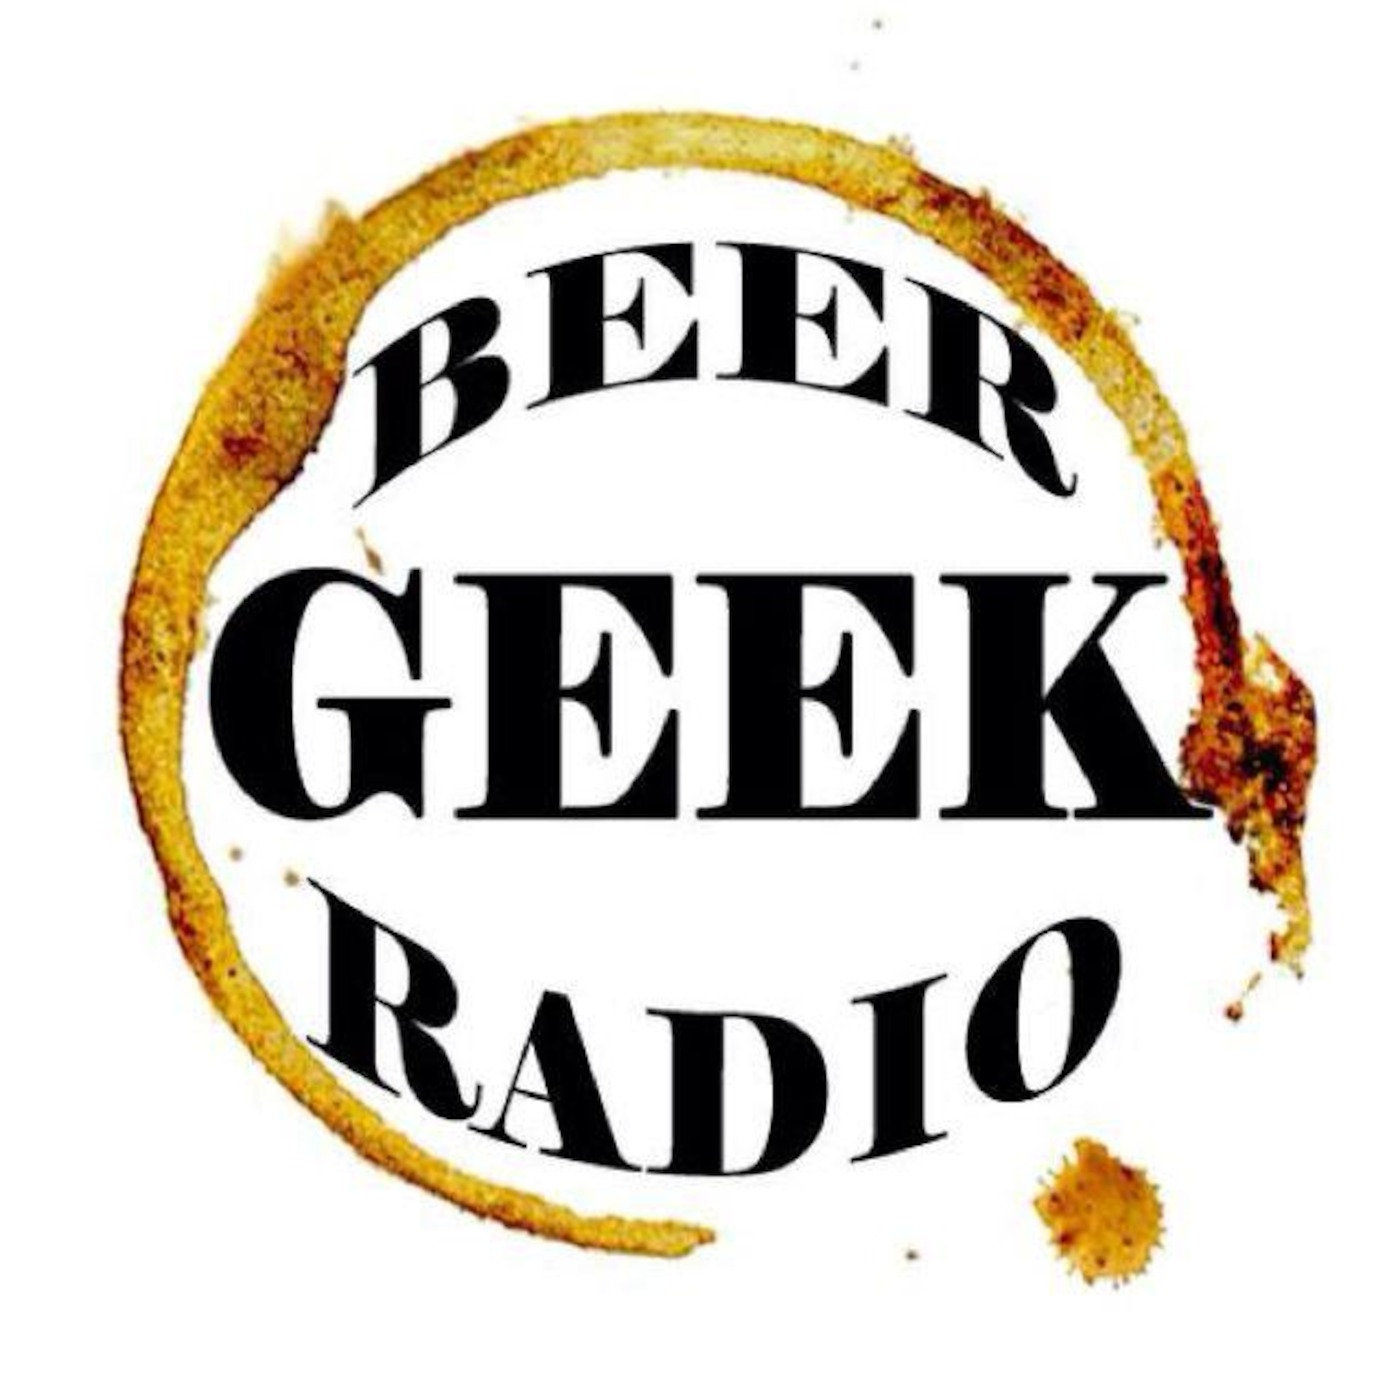 Beer Geek Radio